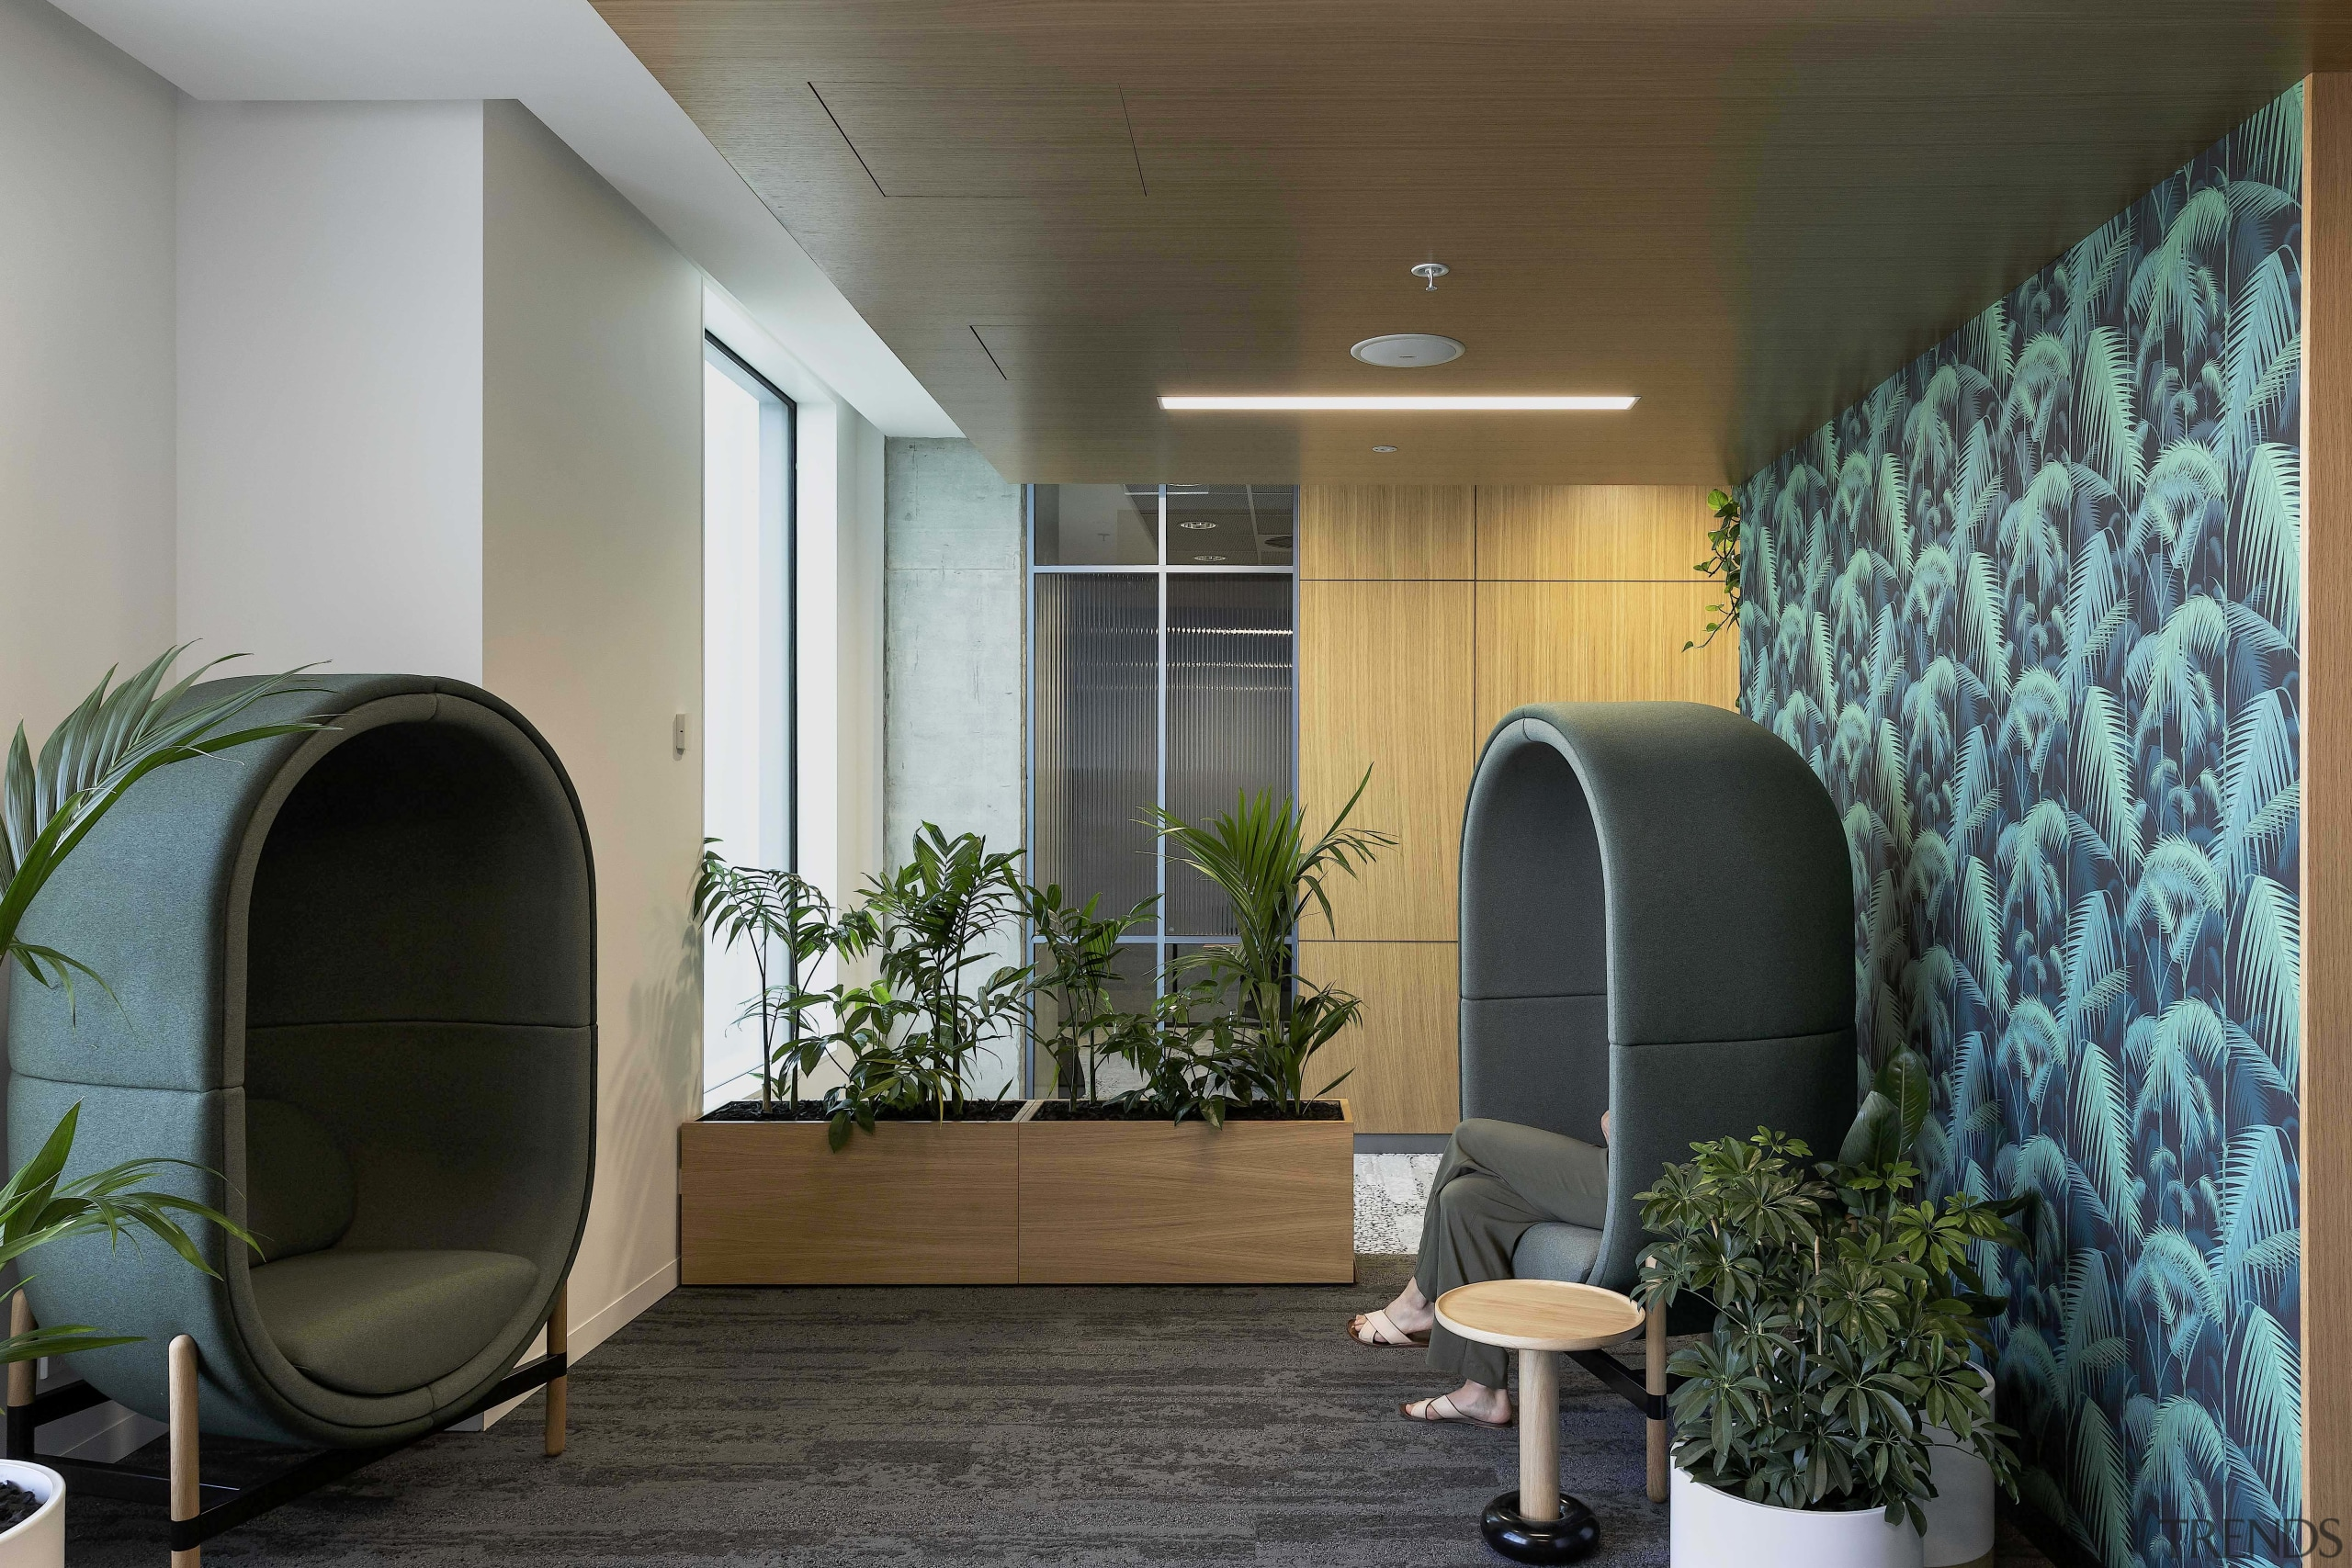 The fit-out caters to every possible staff need, gray, black